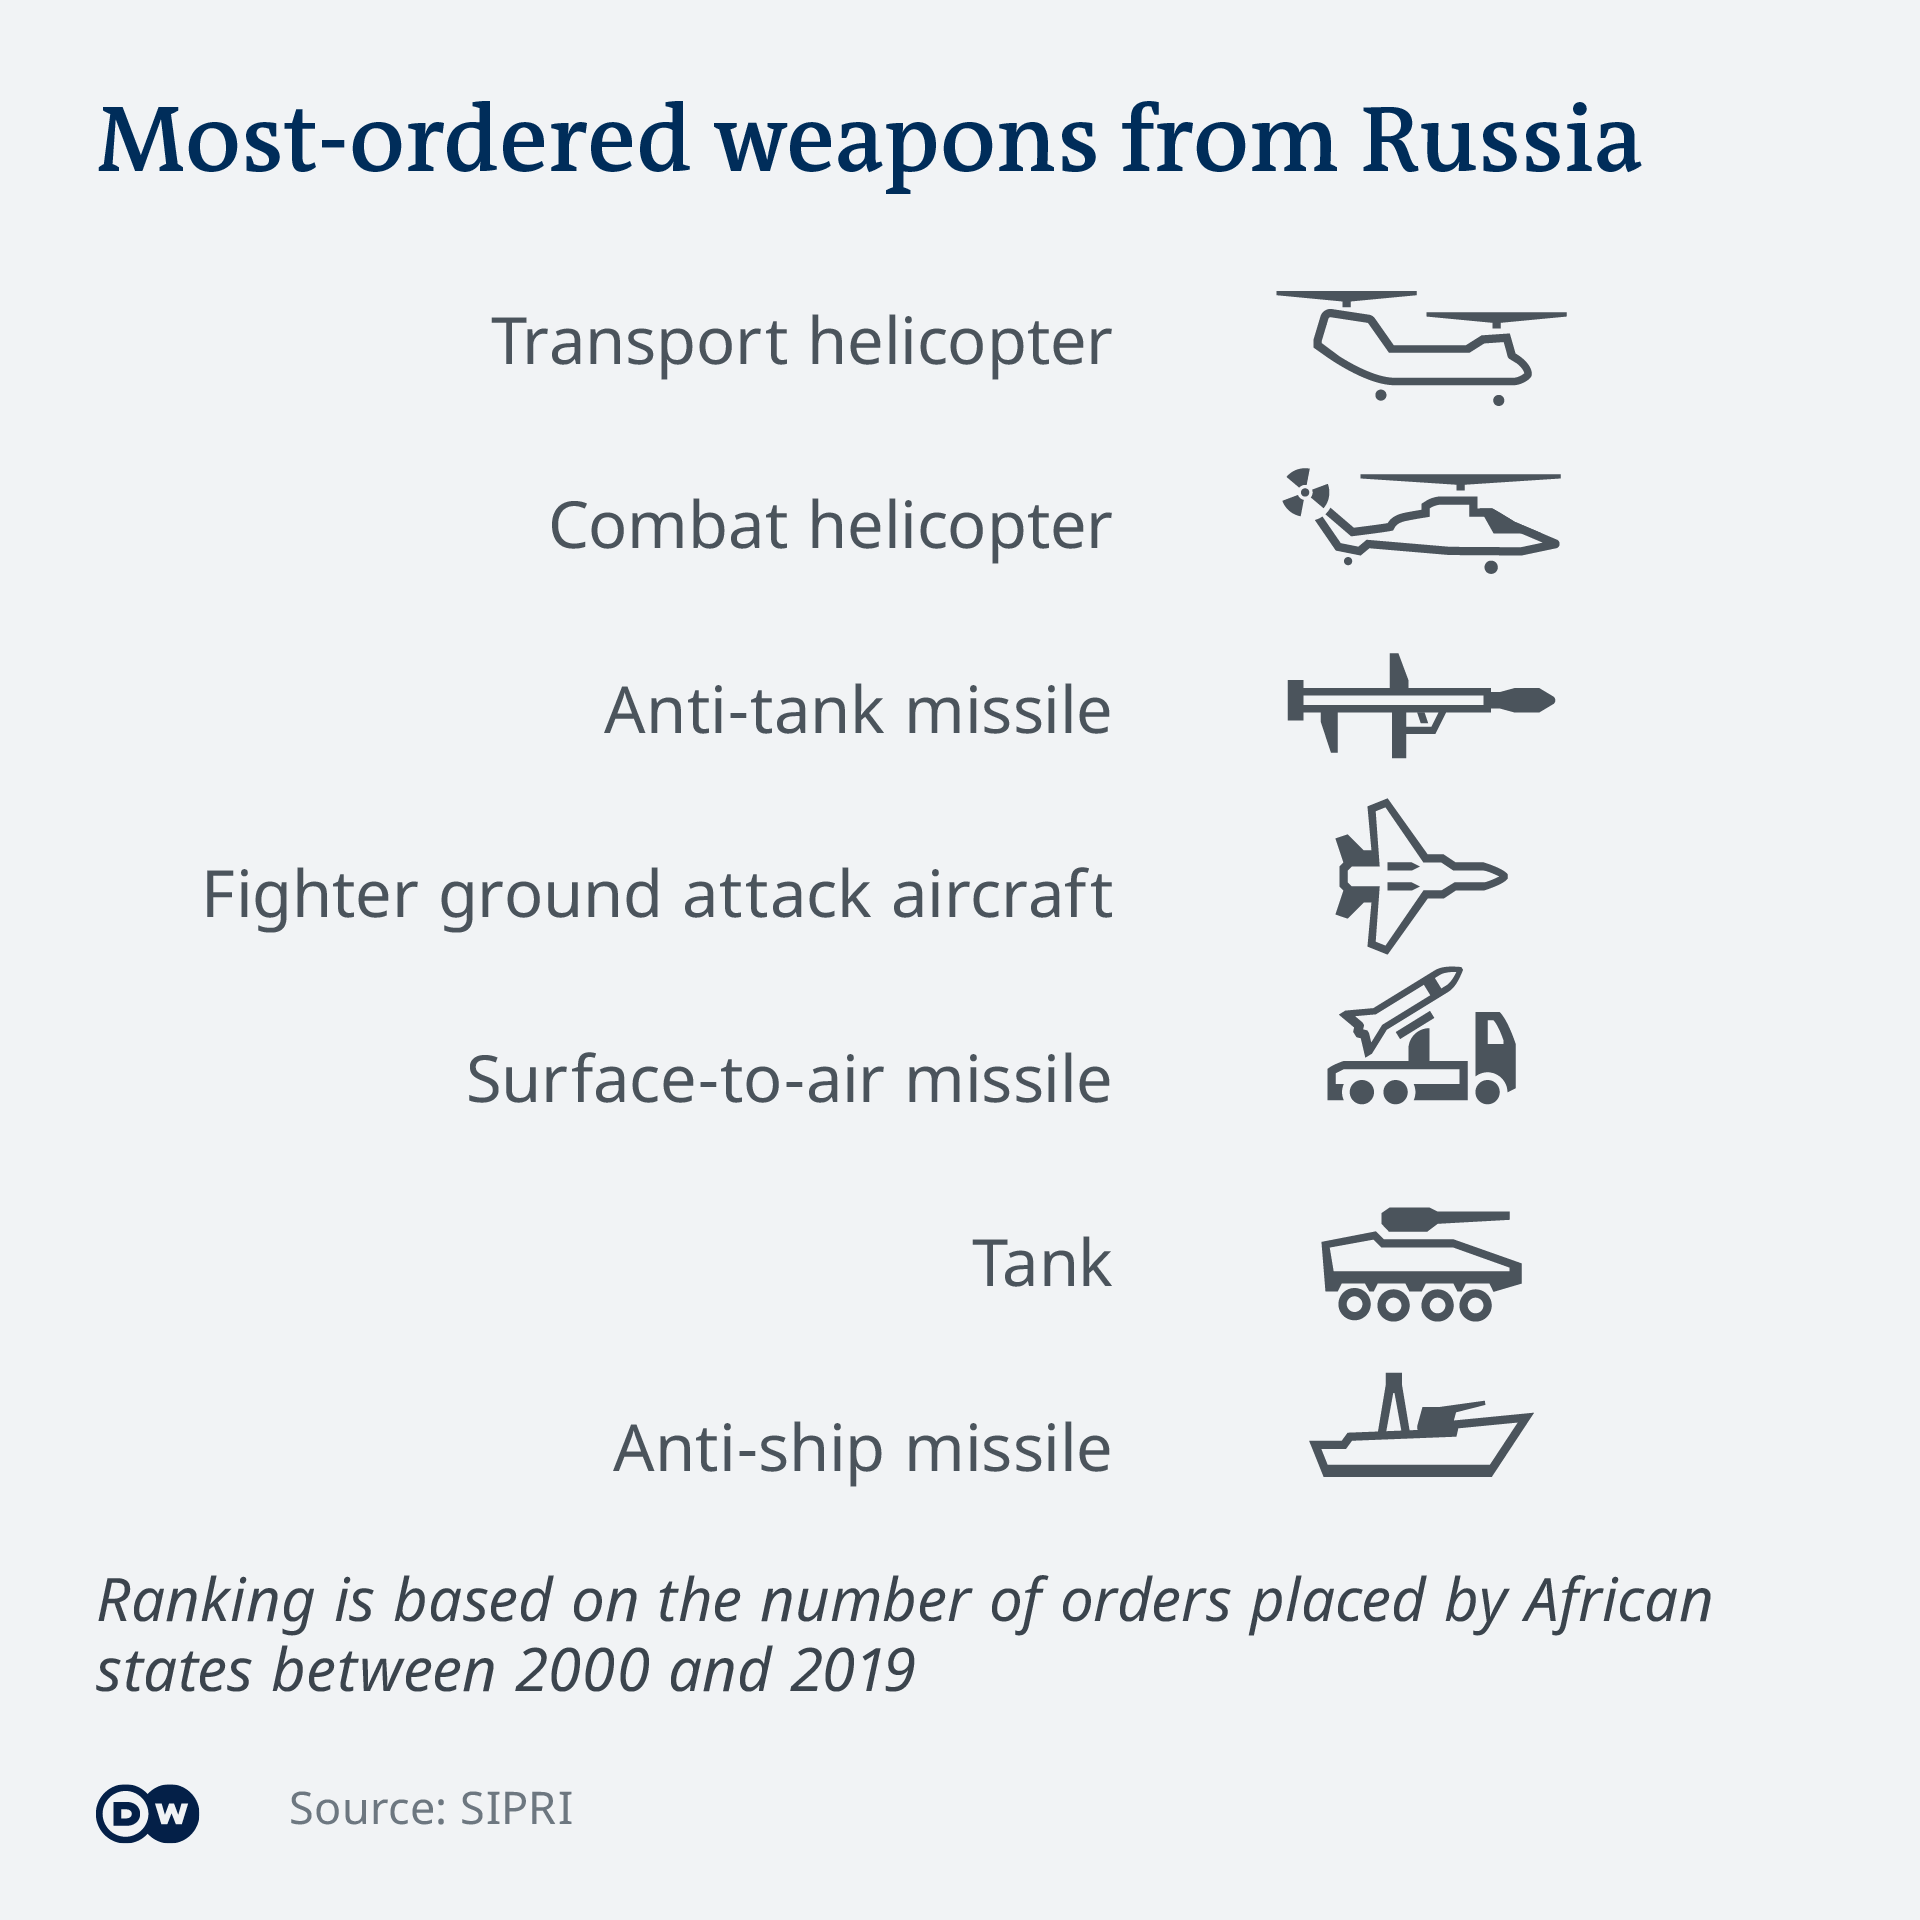 African states' most-ordered weapons from Russia